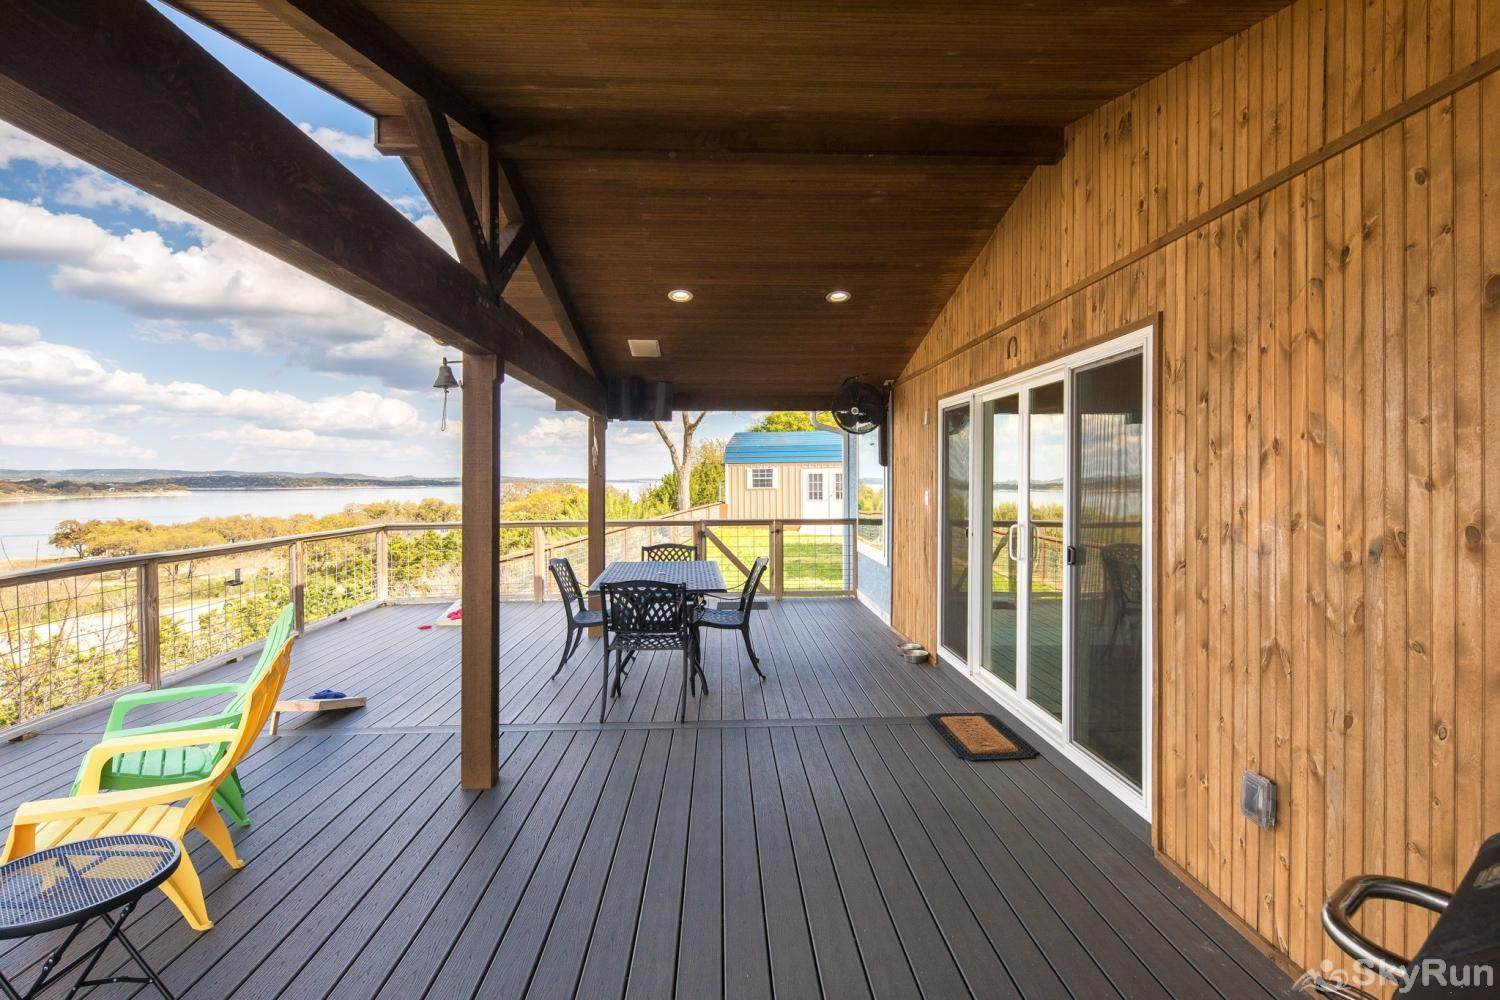 LEDGEROCK POINTE 180 degree sweeping lake views from the deck